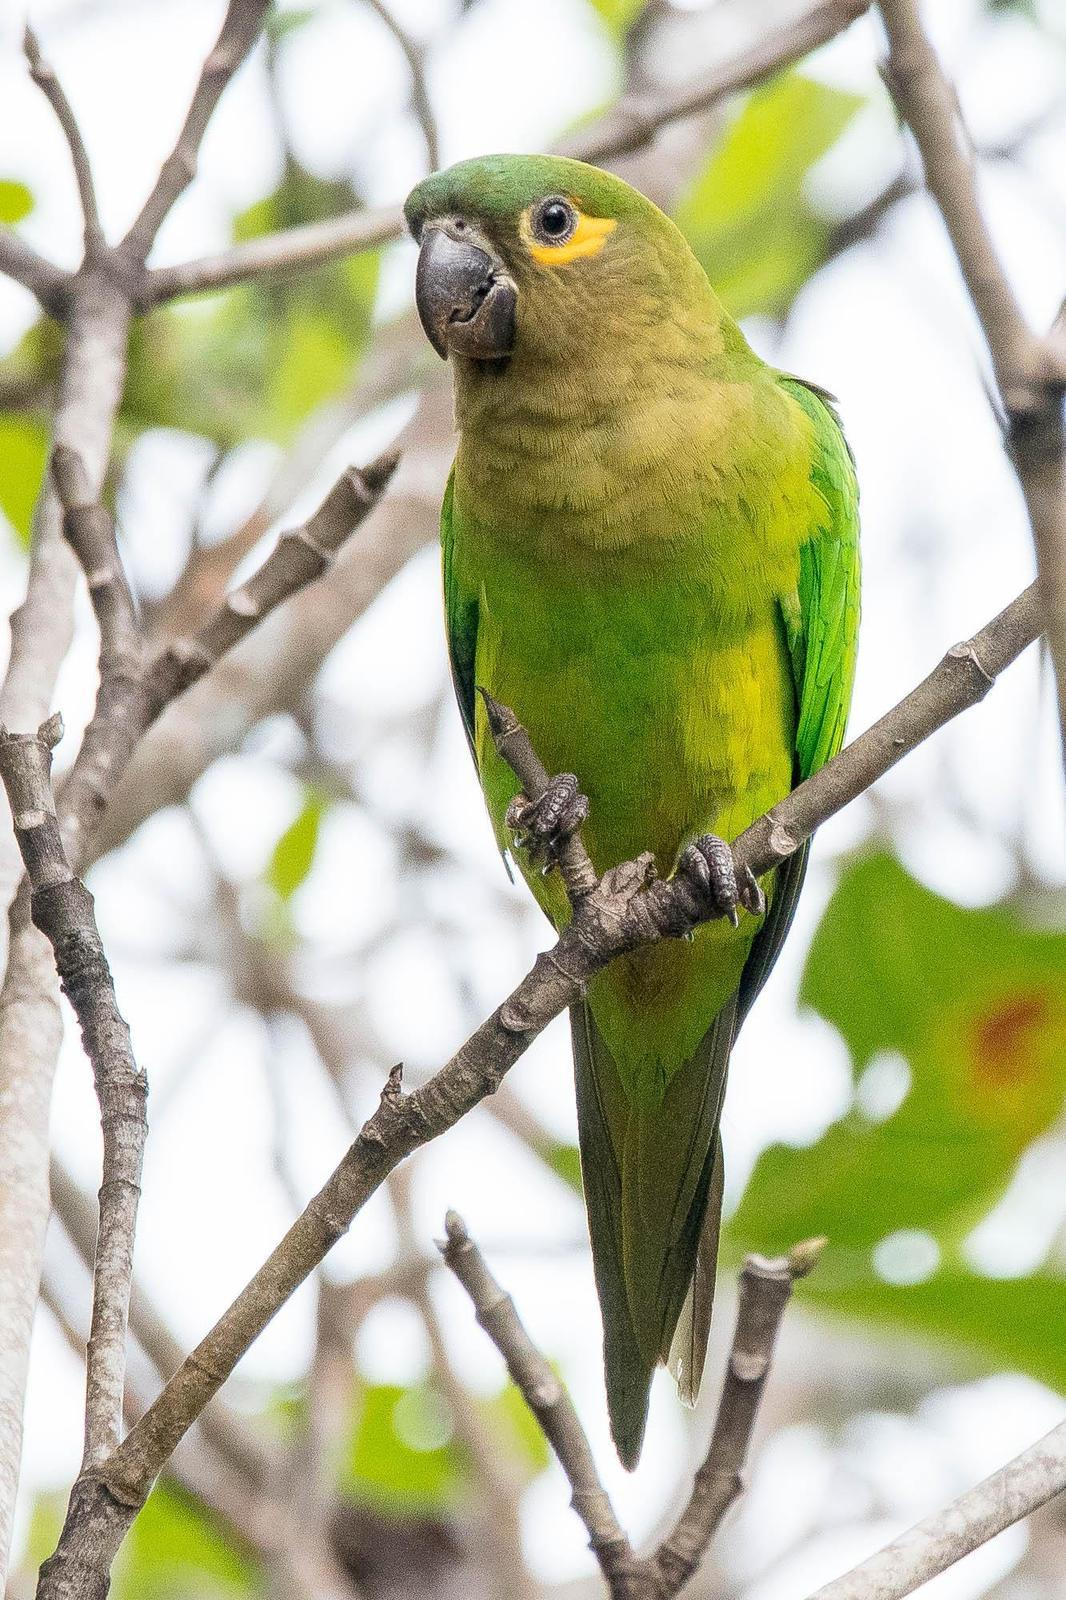 Brown-throated Parakeet Photo by Denis Rivard